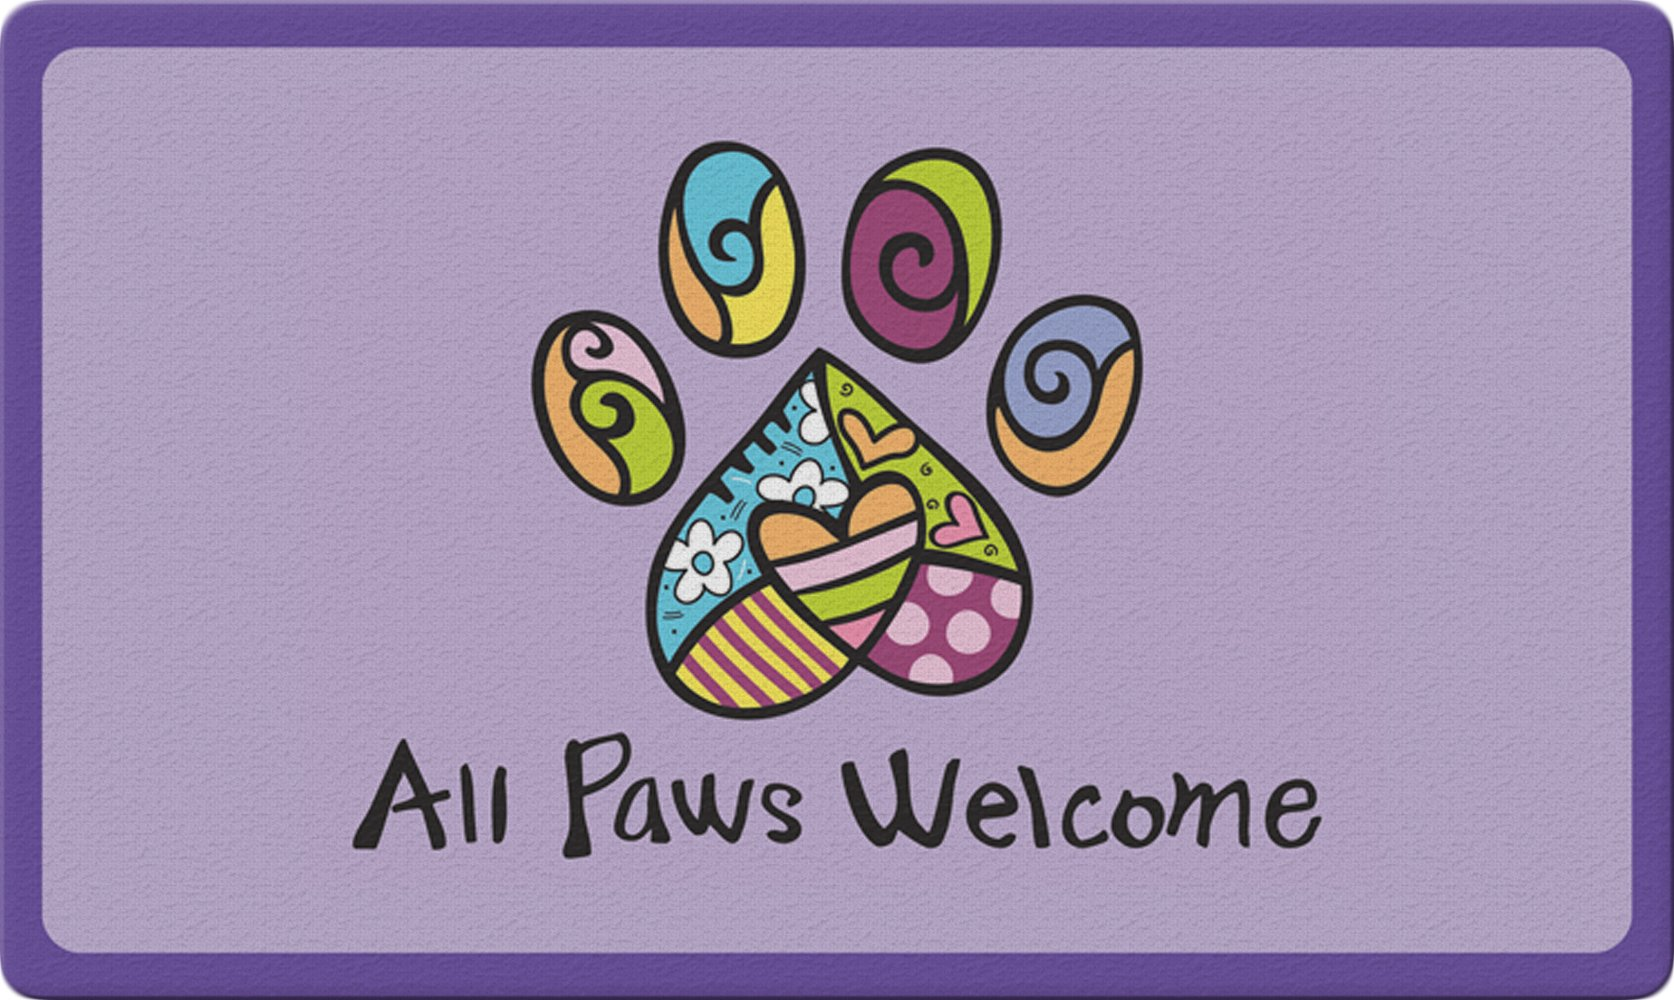 Toland Home Garden All Paws Welcome 18 x 30 Inch Decorative Floor Mat Colorful Puppy Dog Kitty Cat Greeting Doormat